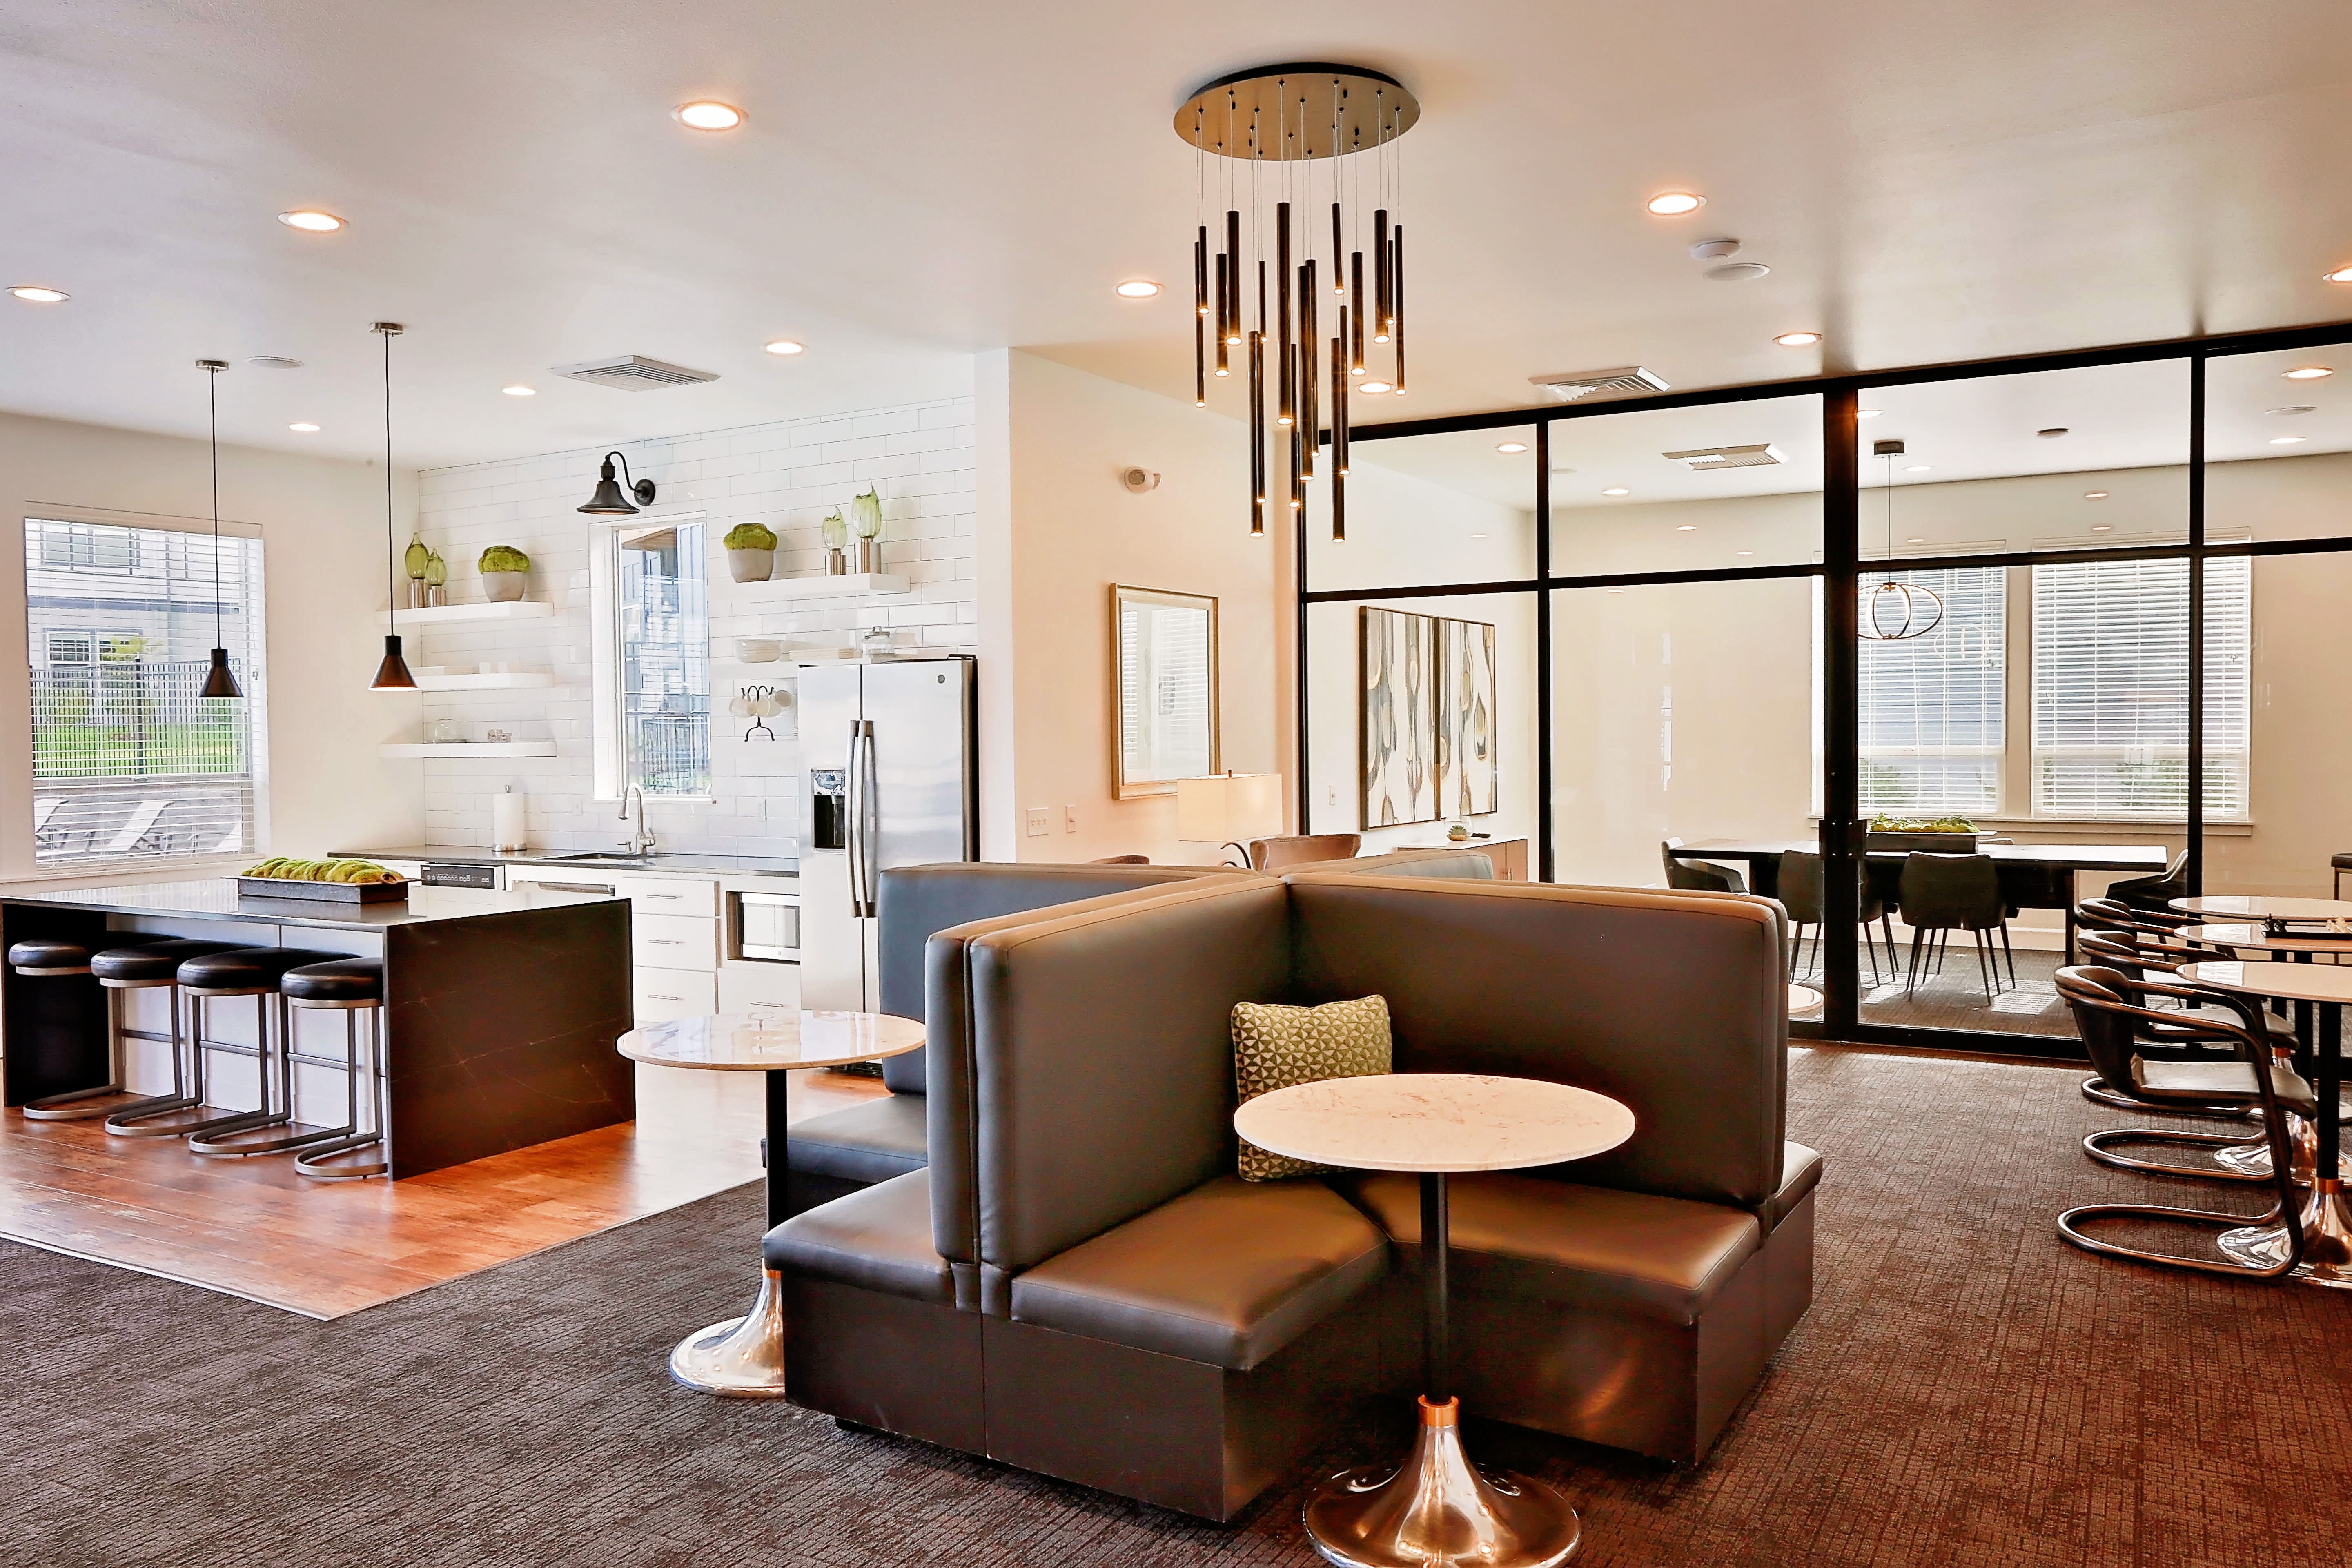 Enjoy Apartments with a Modern Clubhouse at The Boulevard in Philomath, Oregon